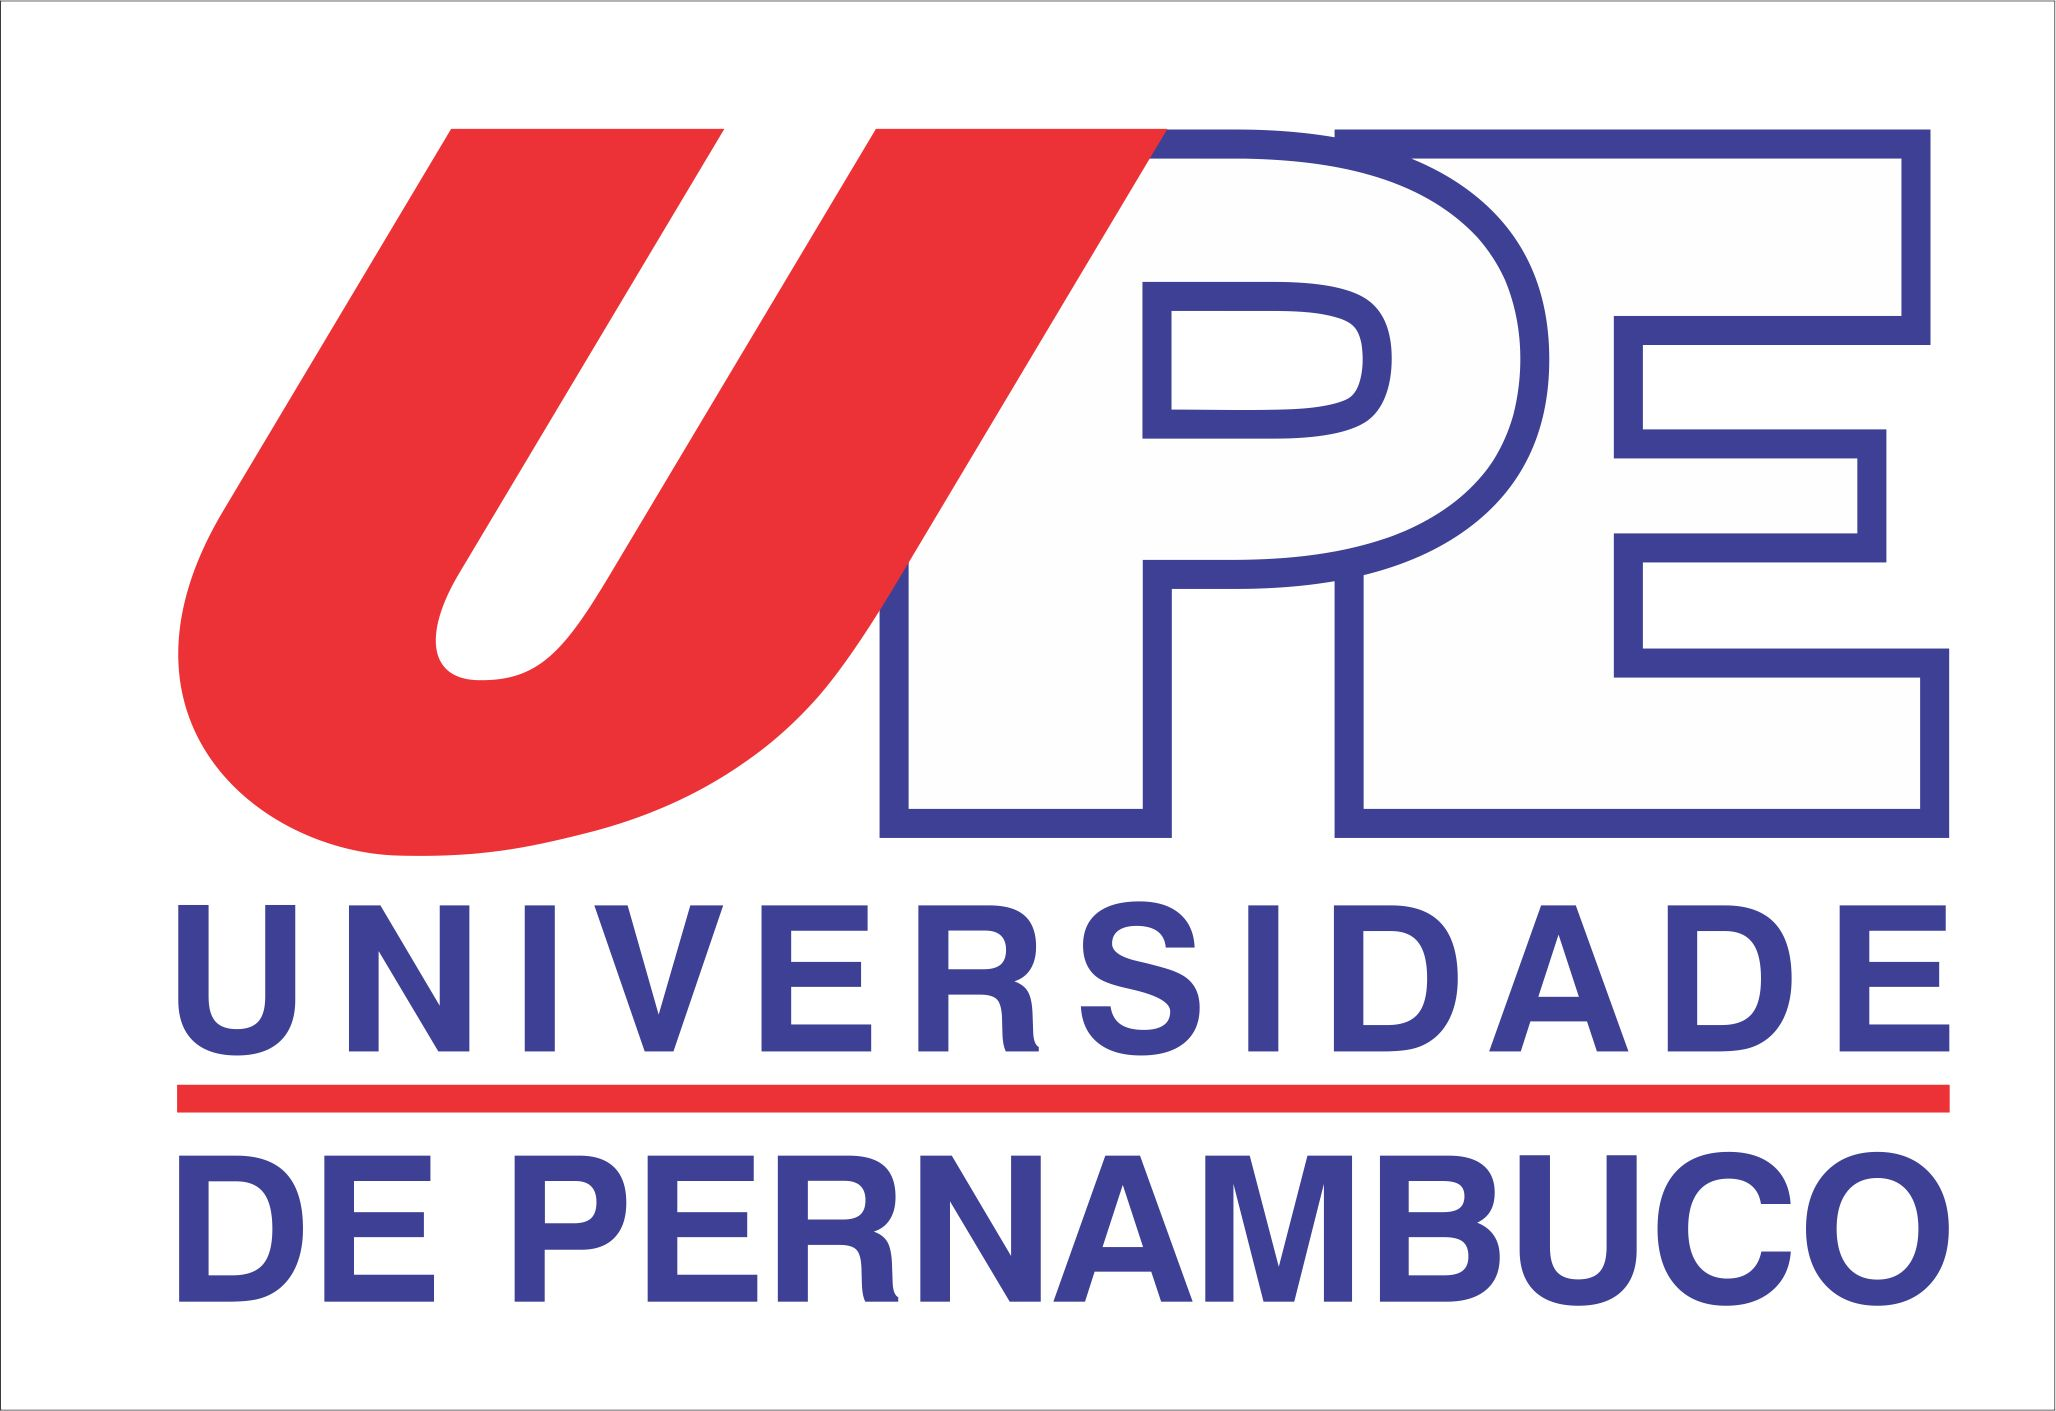 upe